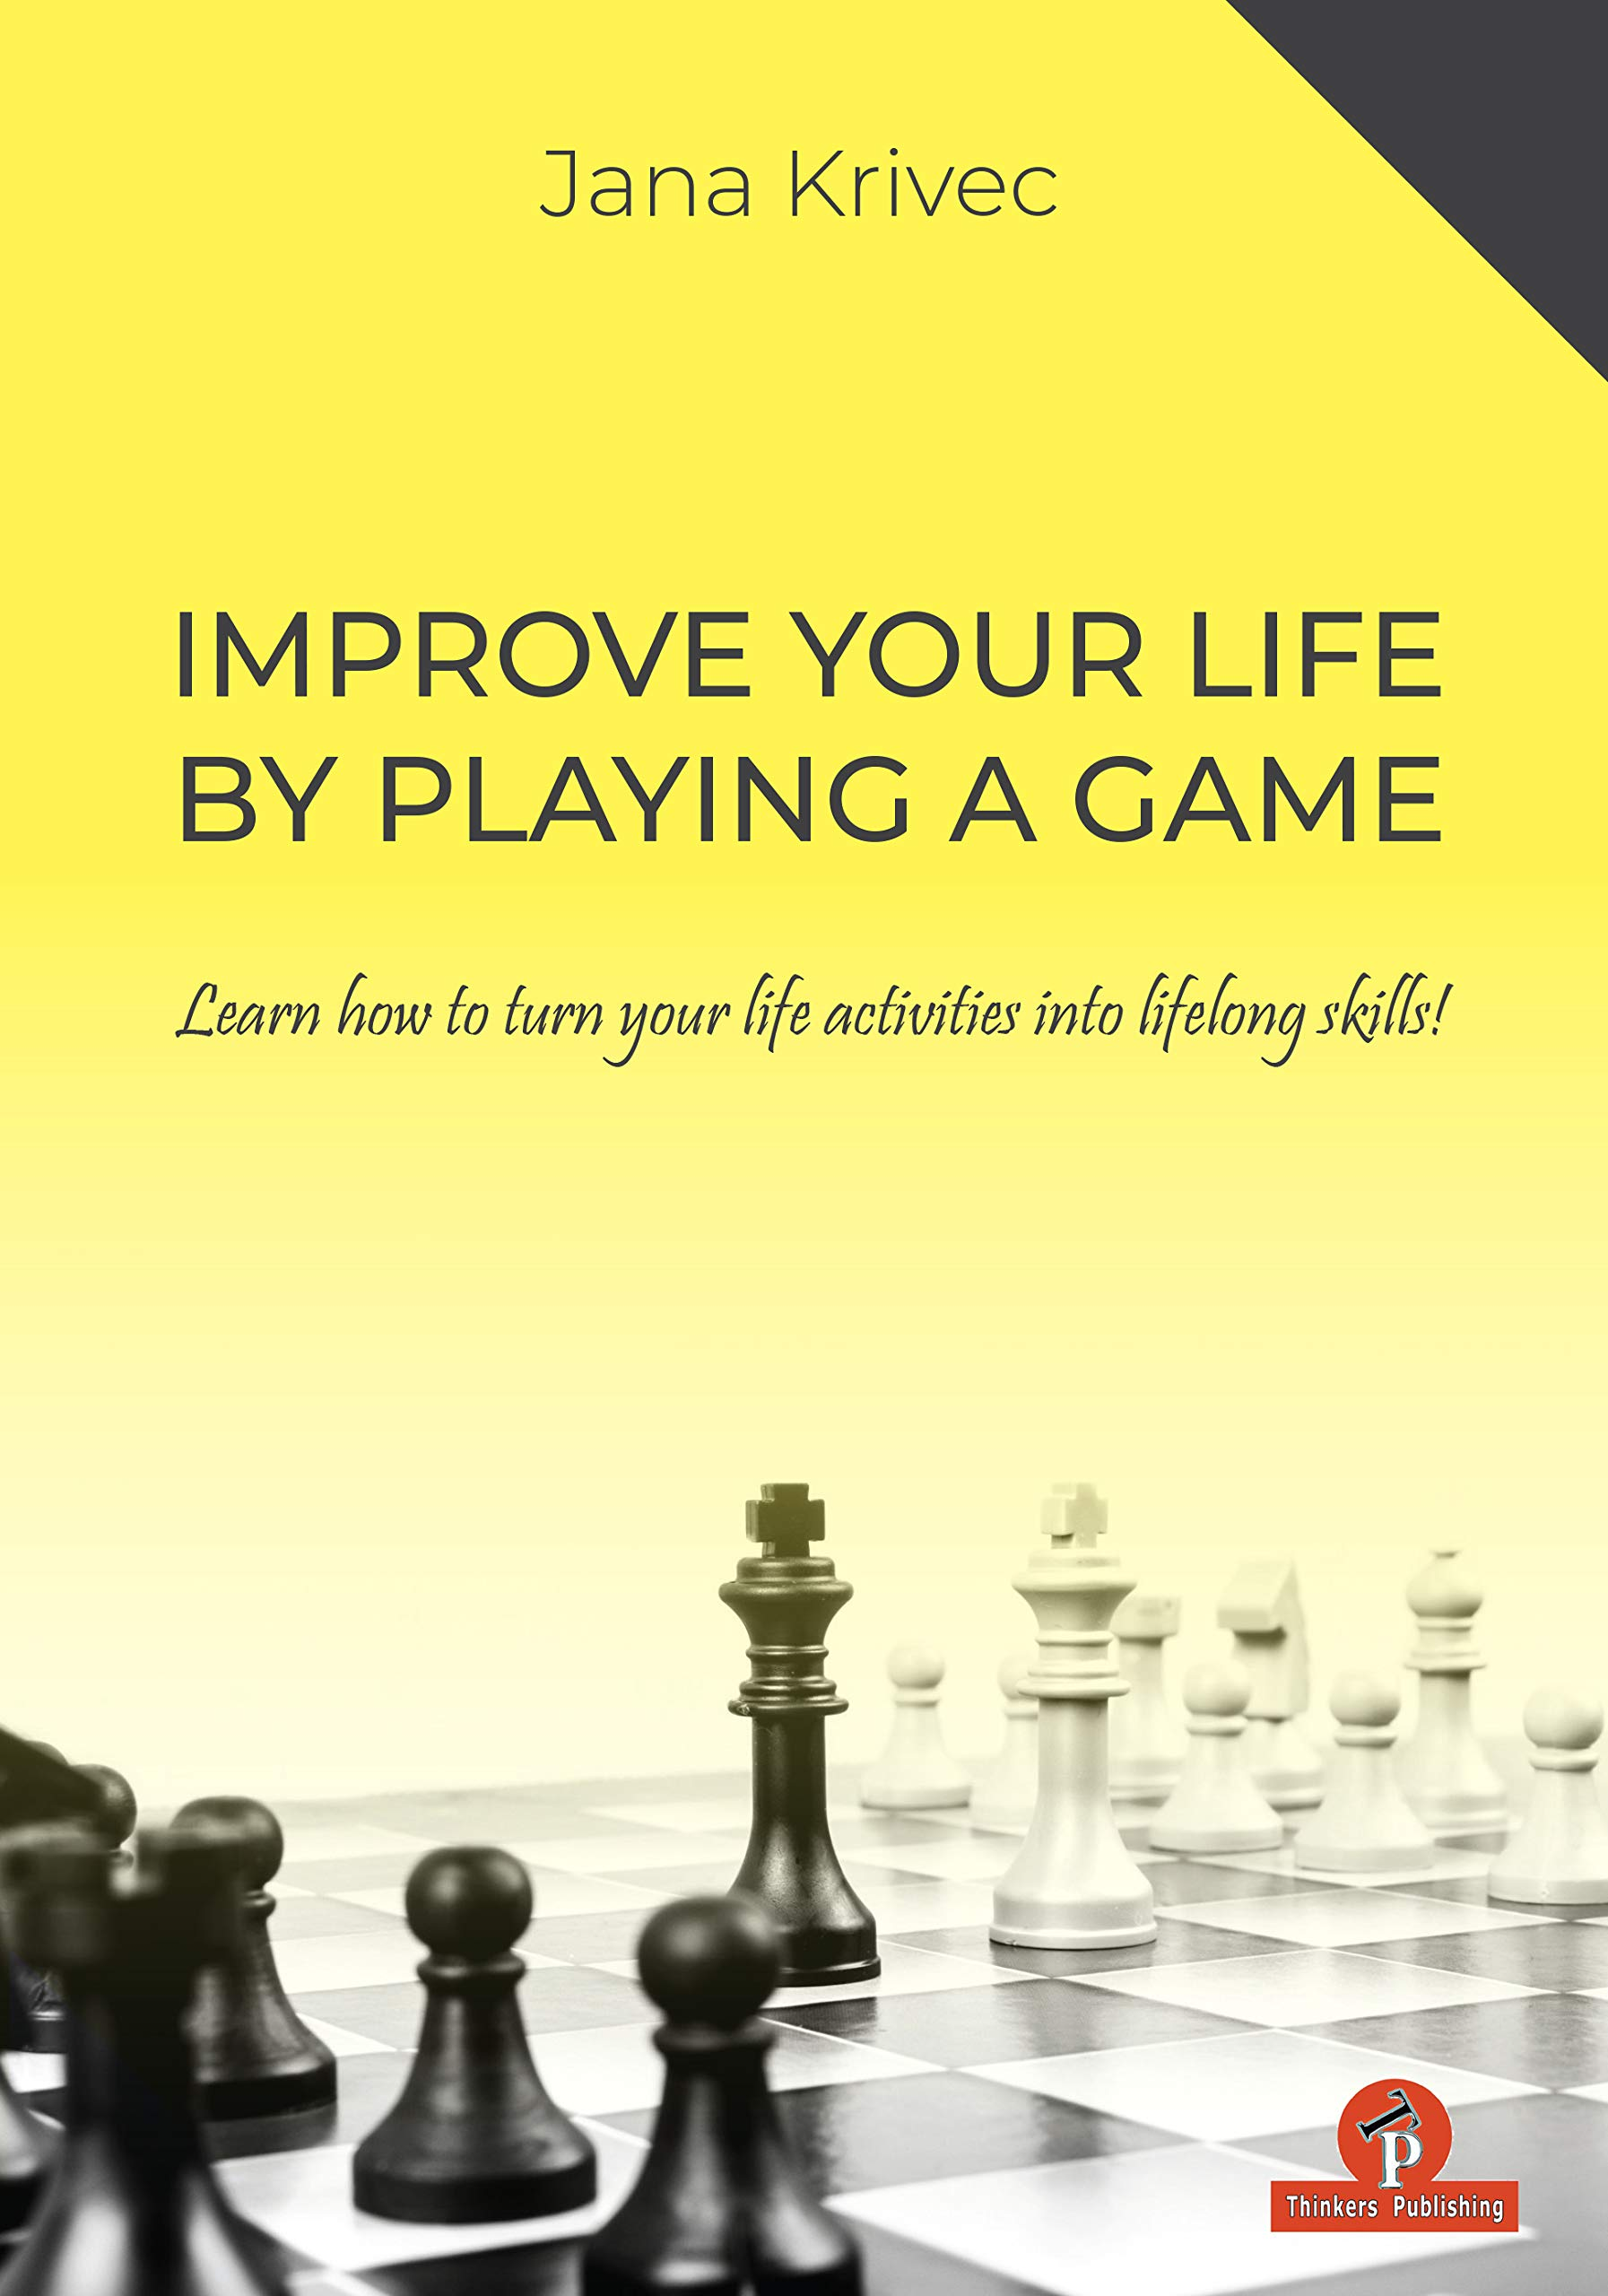 Improve Your Life by Playing a Game, Dr. Jana Krivec, Thinker's Publishing, 28 Jan. 2021, ISBN 9464201029